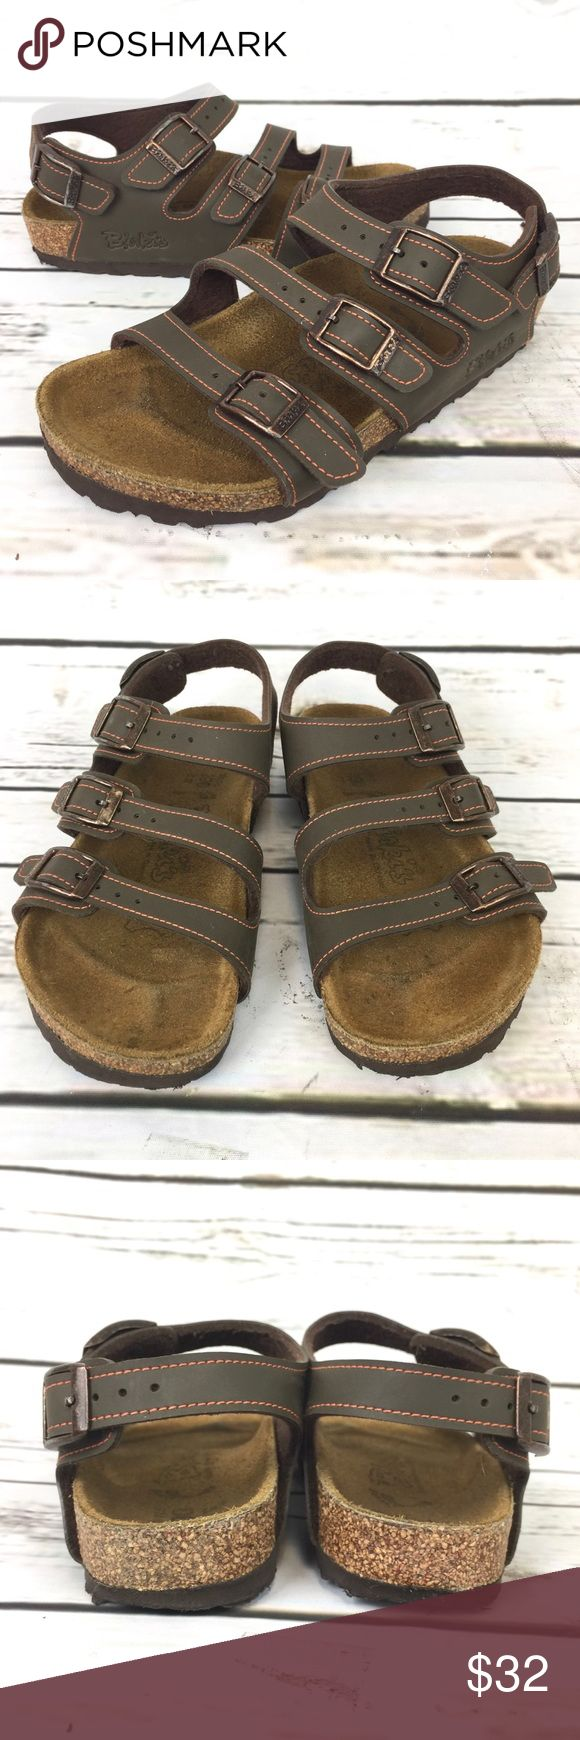 Birkenstock Sandals Kids 3 Strap Leather Shoes Birkenstock Sandals Kids Size 12 Brown 3 Strap Leather Shoes. In great Condition. Does show wear on footbed. View pictures for details. Birkenstock Shoes Sandals & Flip Flops